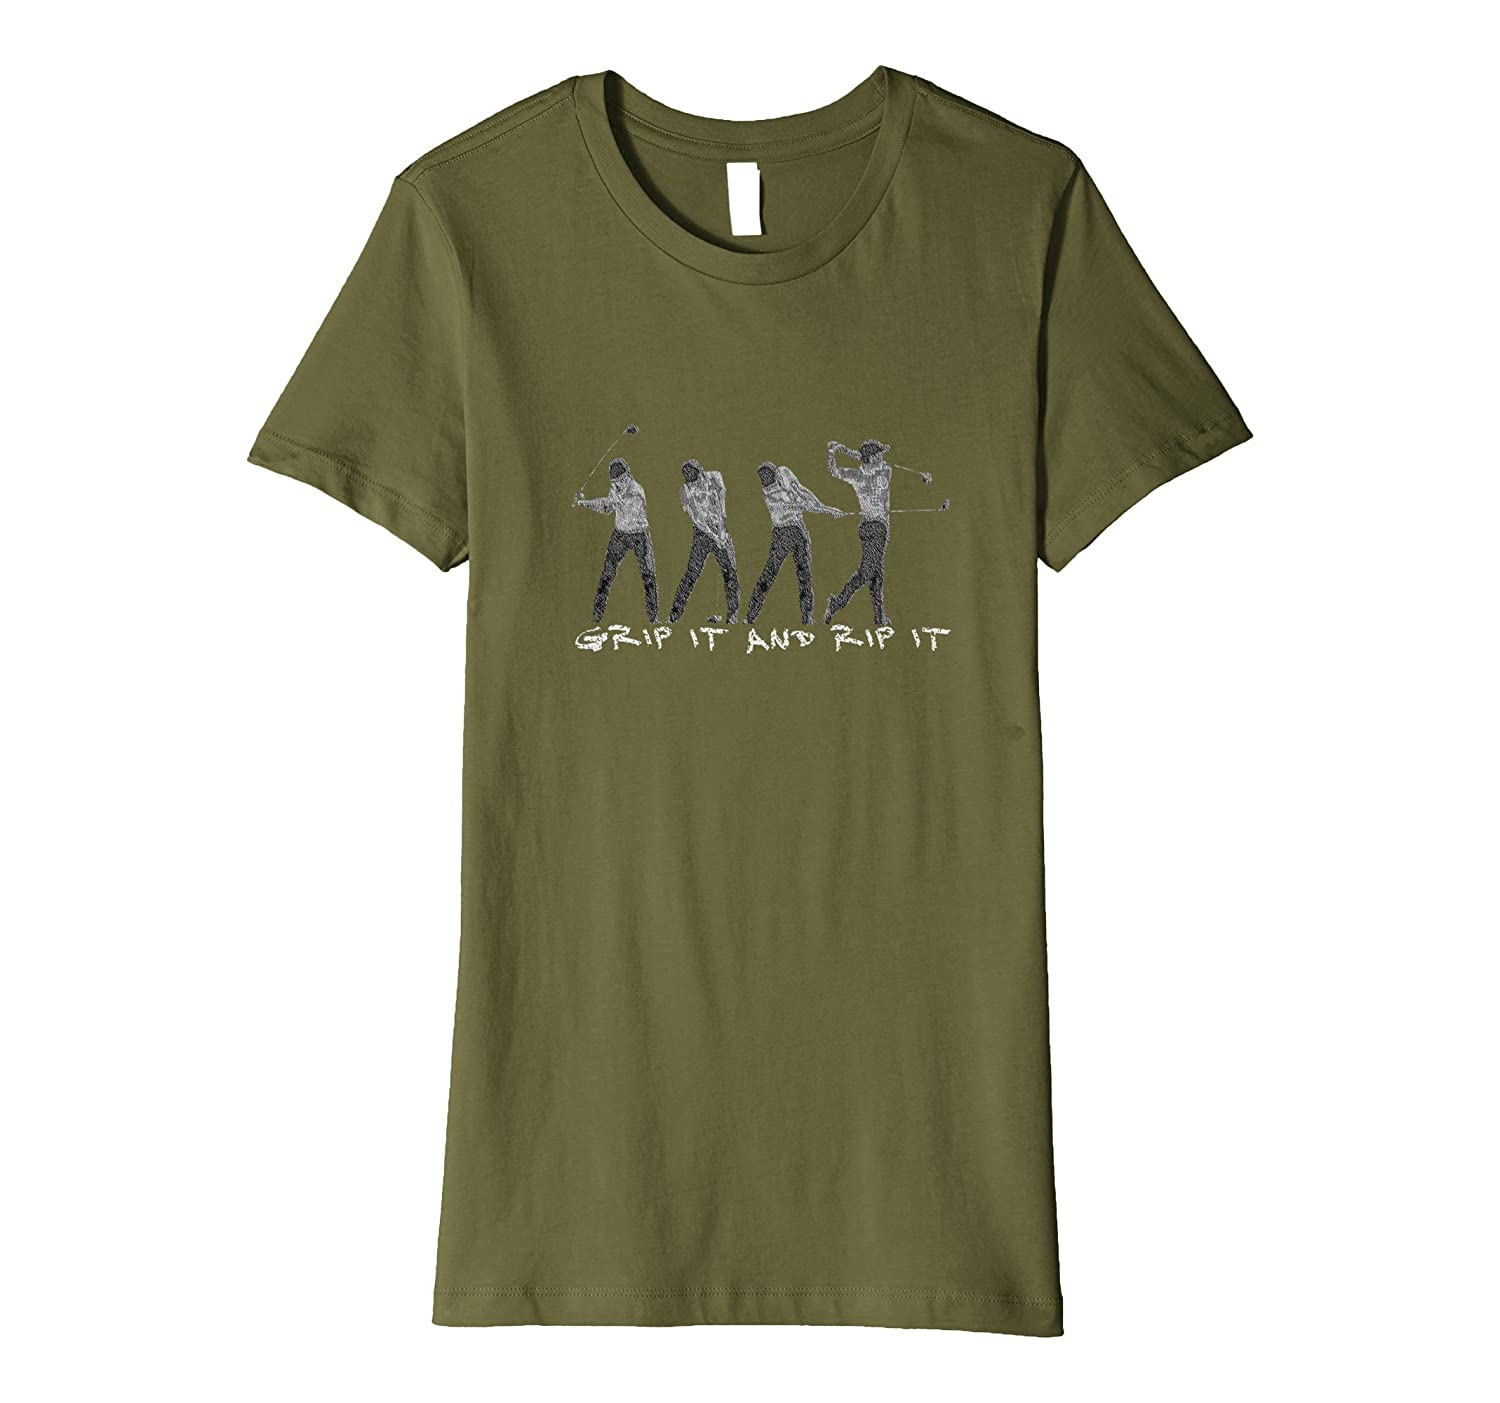 Grip It and Rip It – Funny Golf Saying T-shirt for Golfers